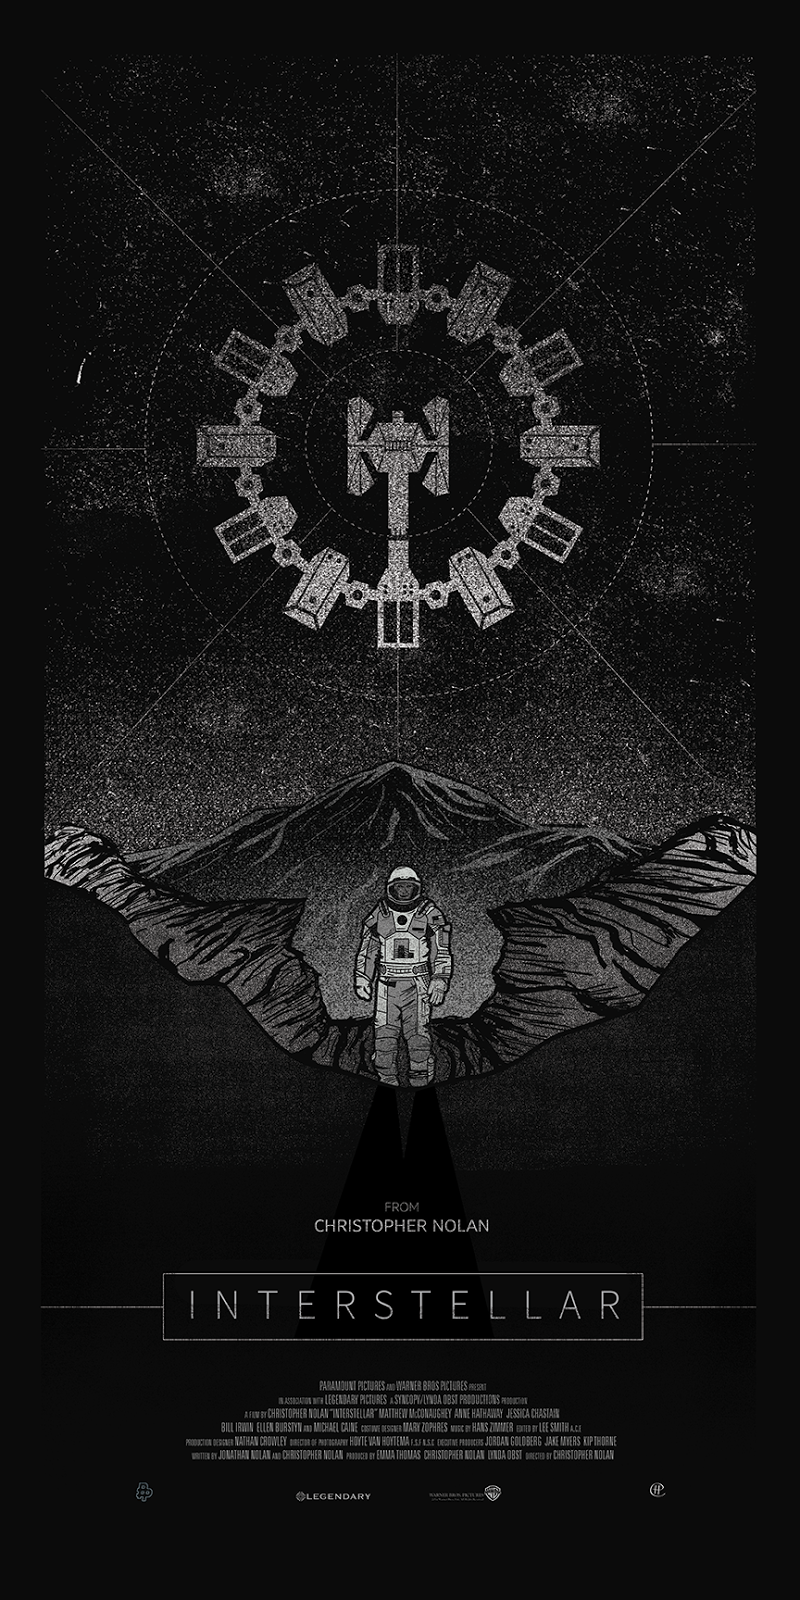 Interstellar Poster Geek Art Gallery: Post...